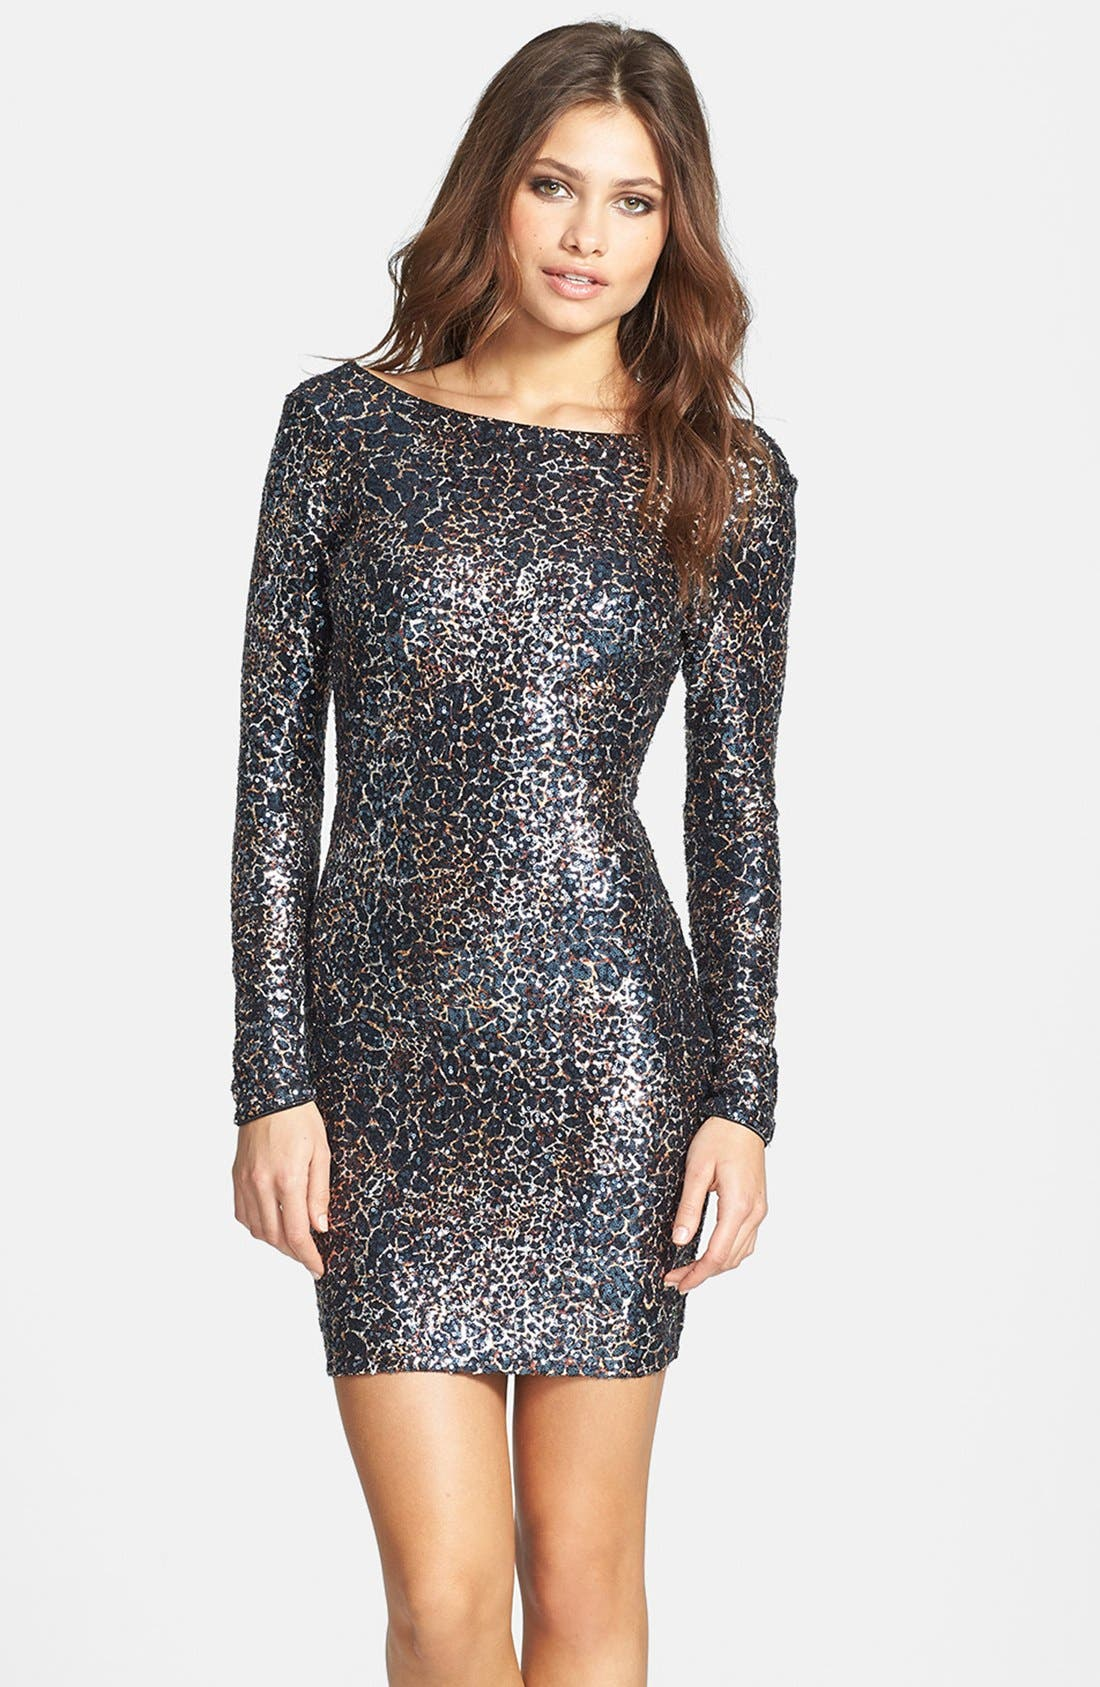 Alternate Image 1 Selected - Dress the Population 'Lola' Foiled Sequin Body-Con Dress